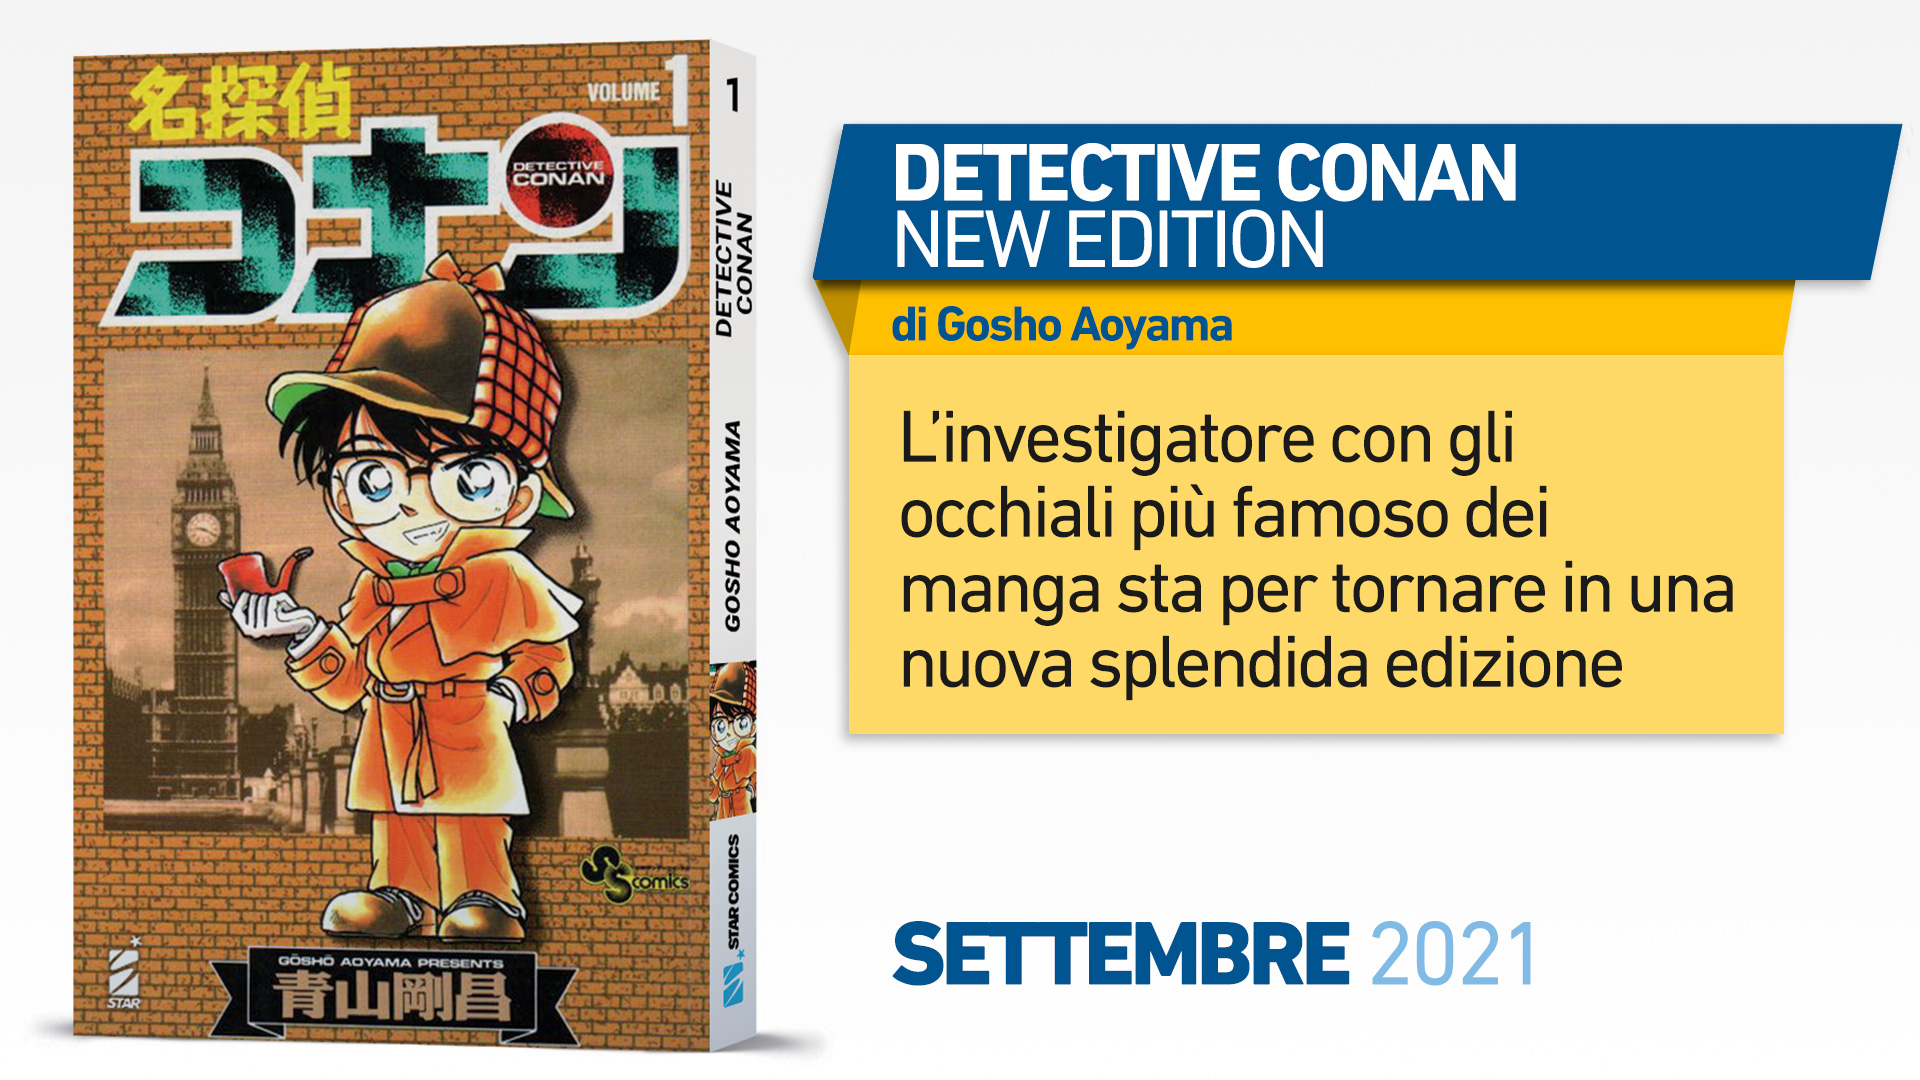 DETECTIVE CONAN – NEW EDITION